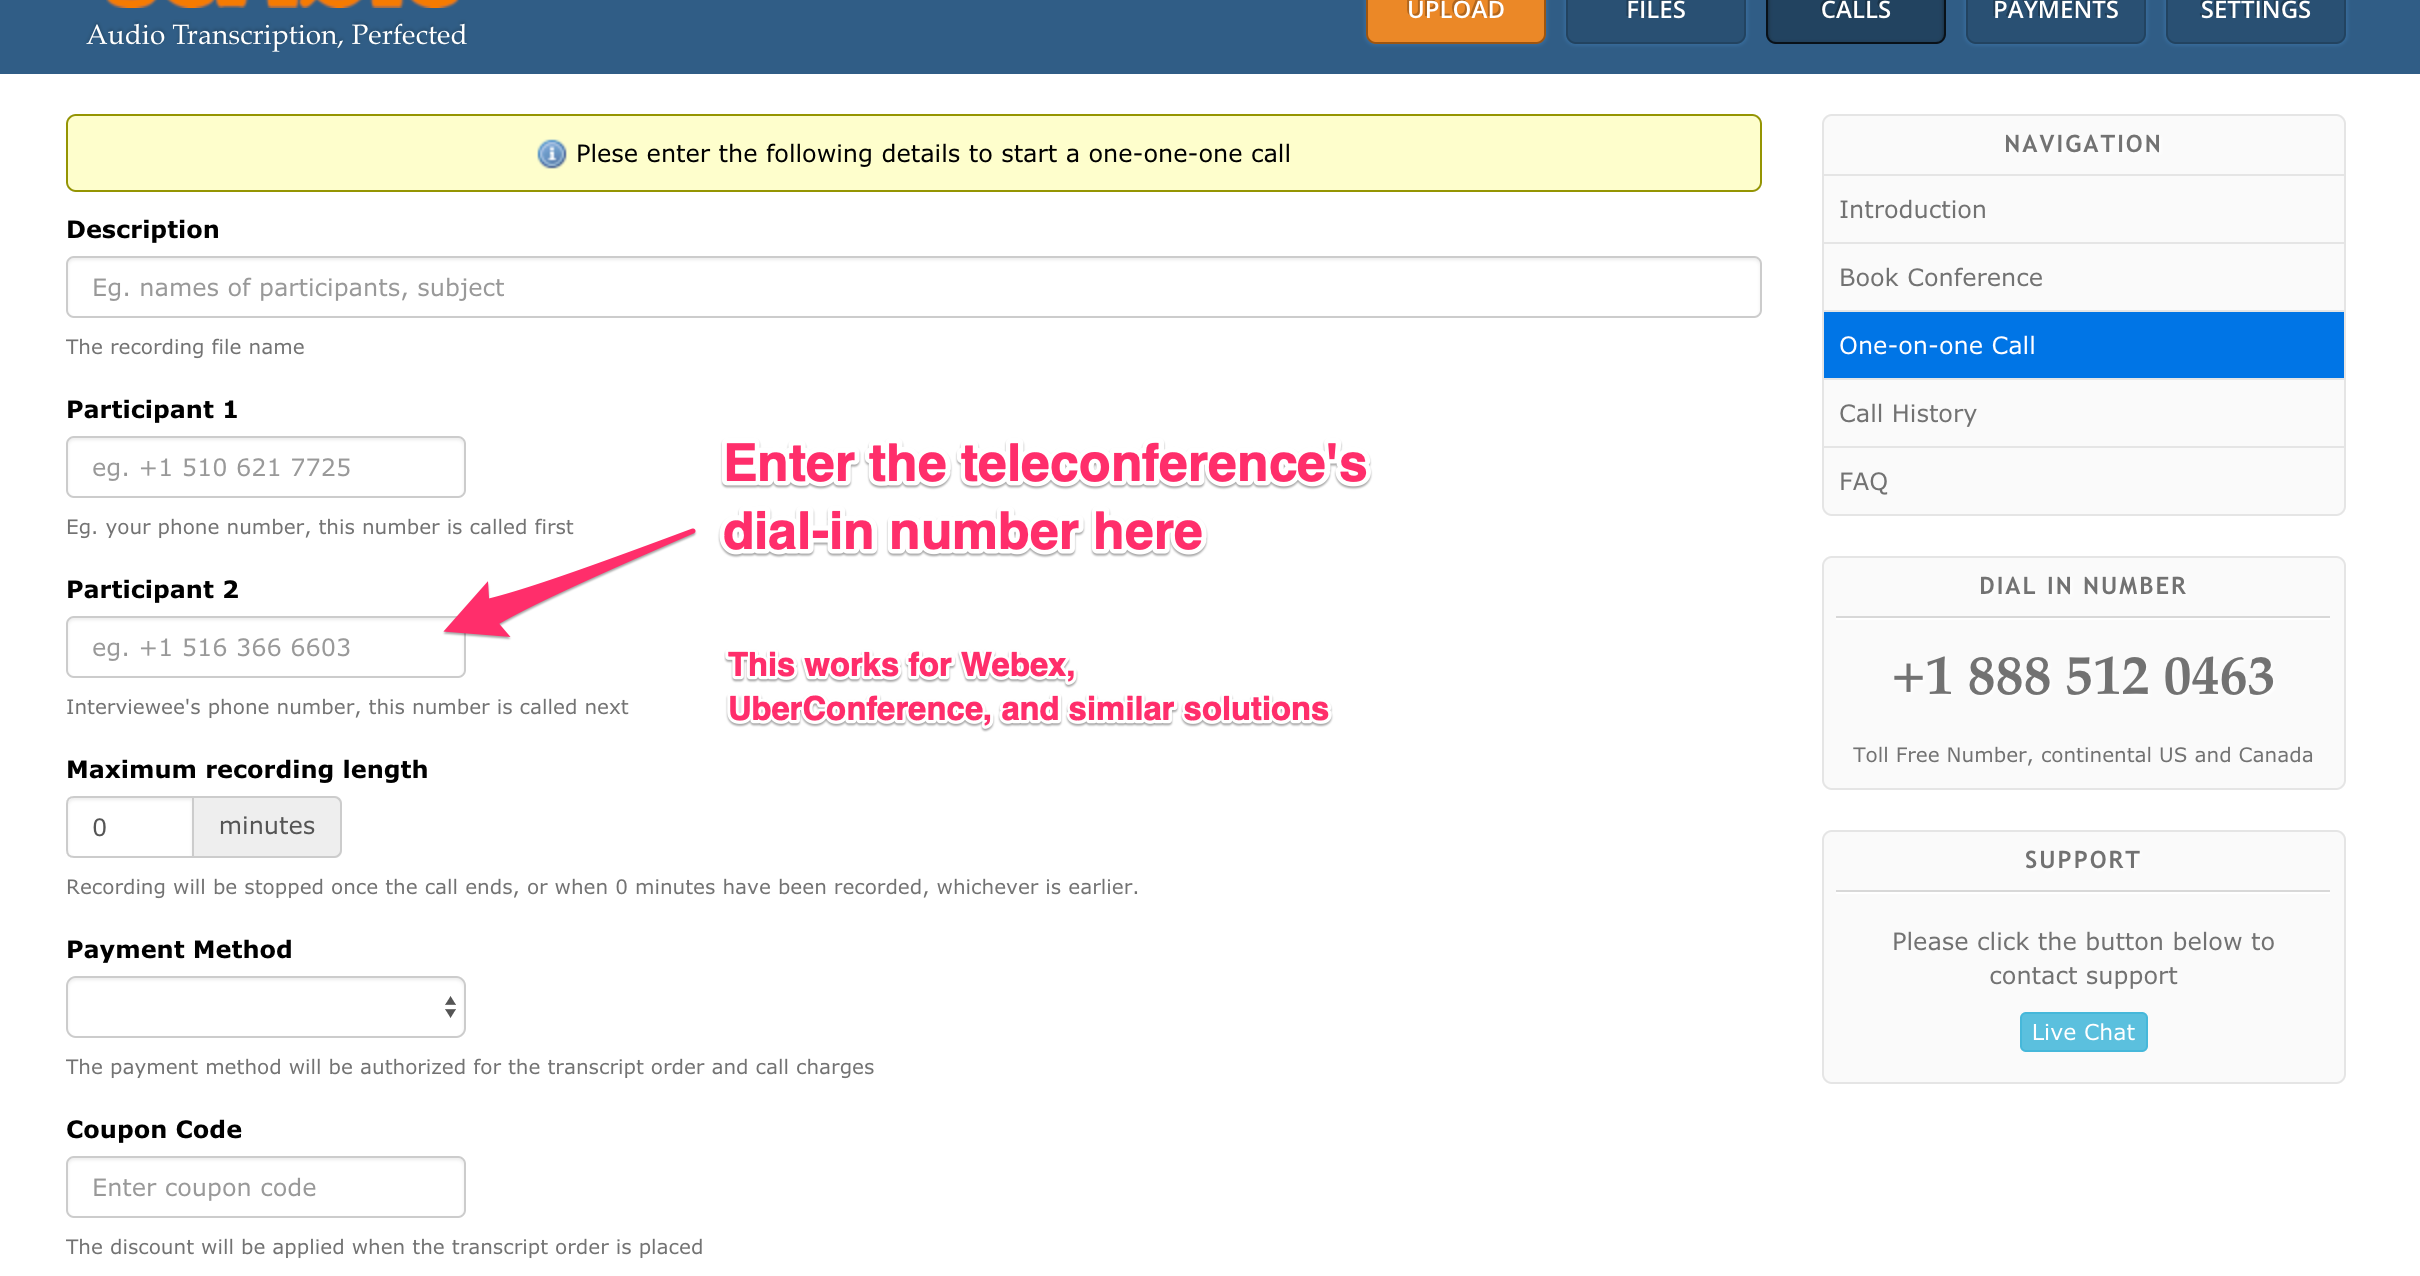 Add the Teleconference Dial-in Number